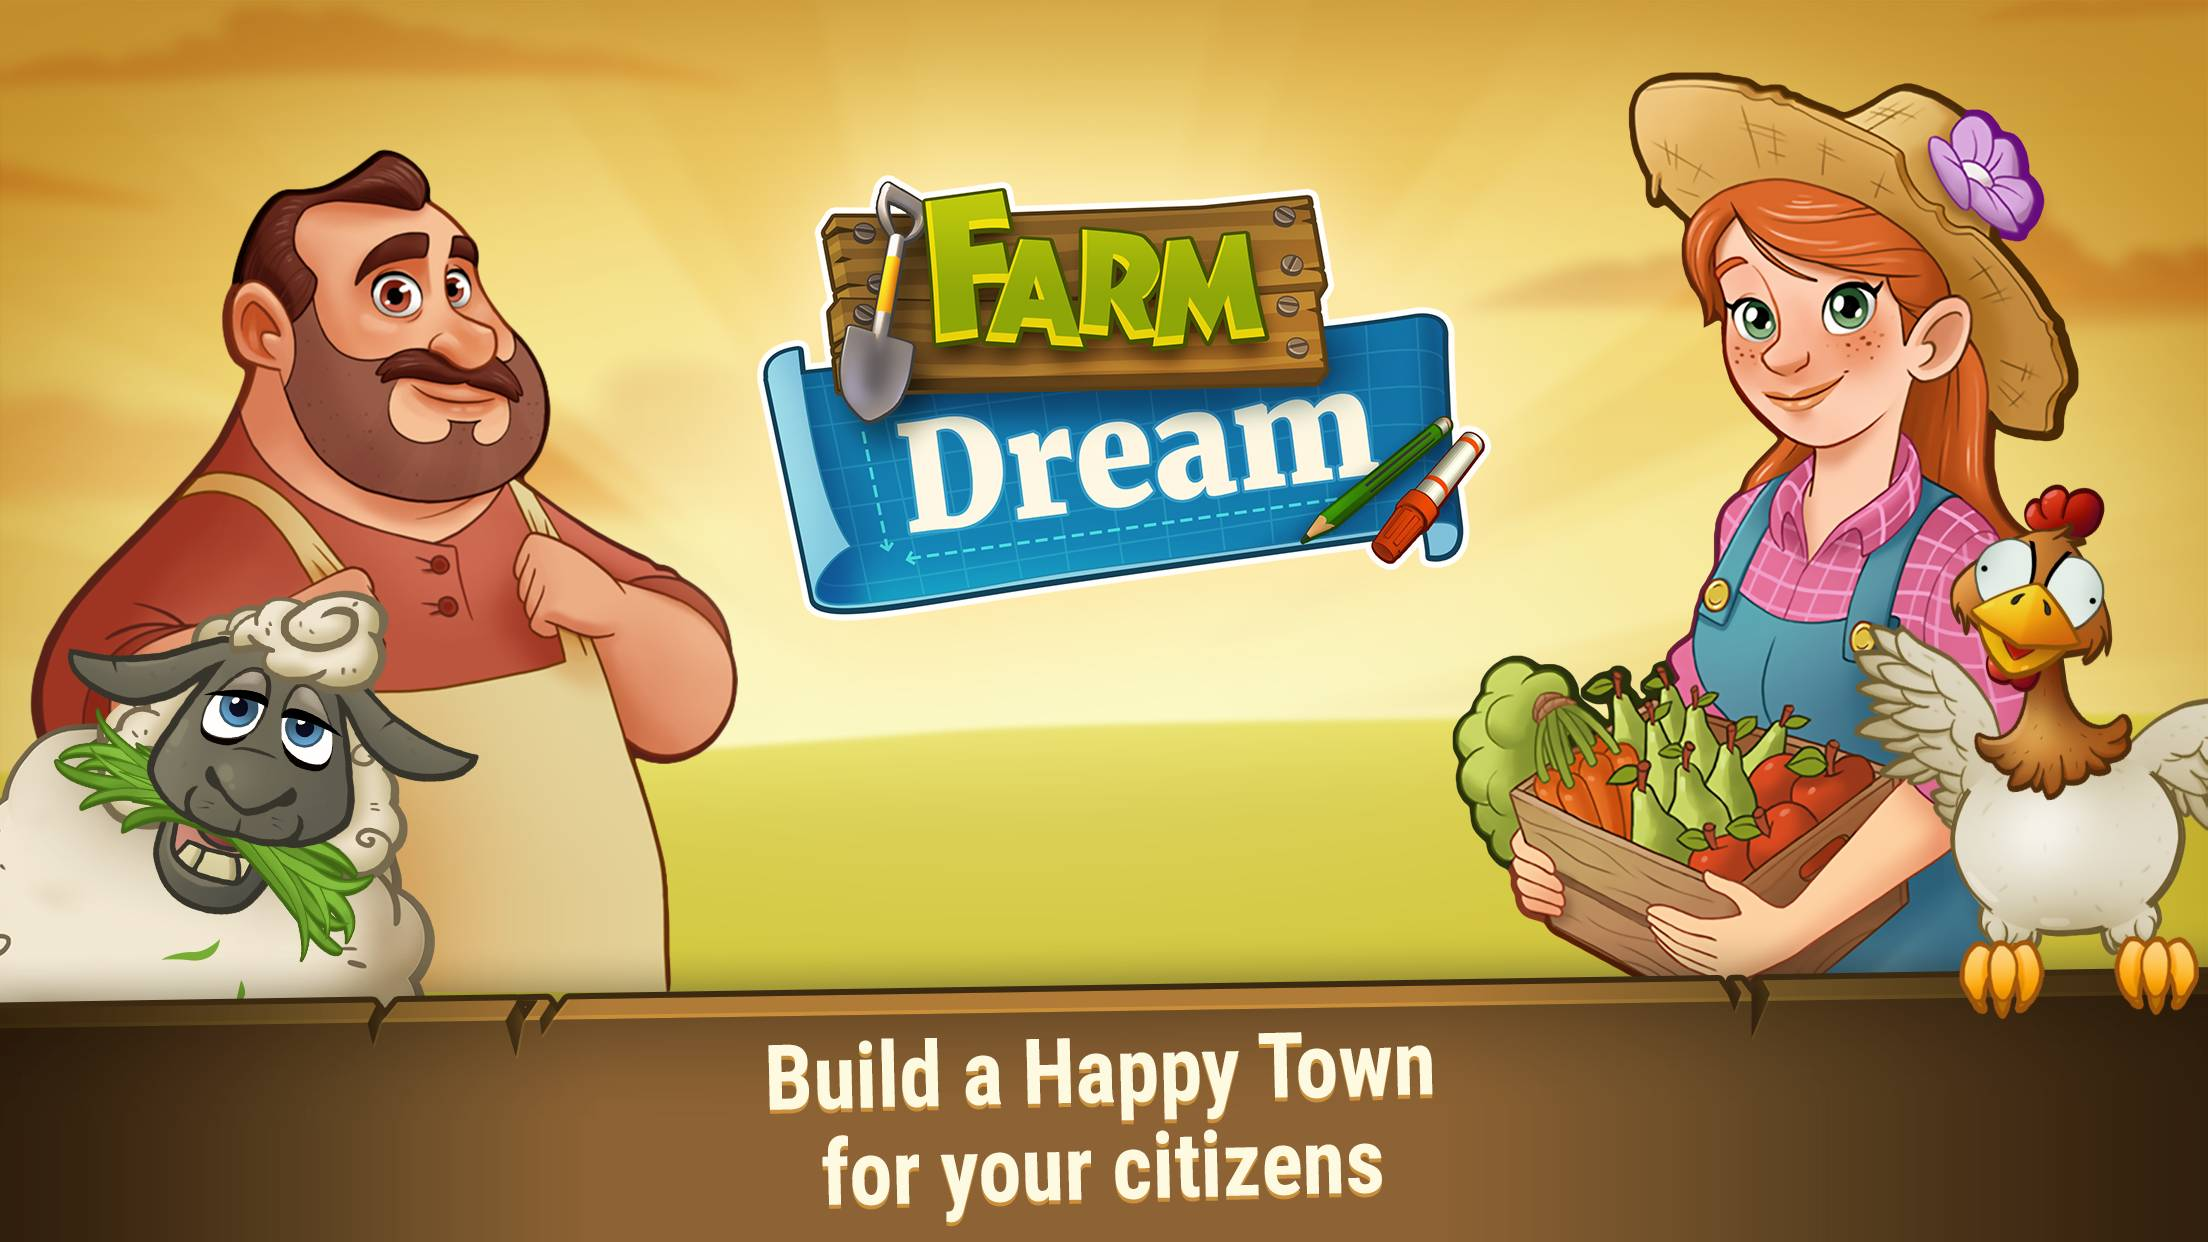 Farm Dream is live